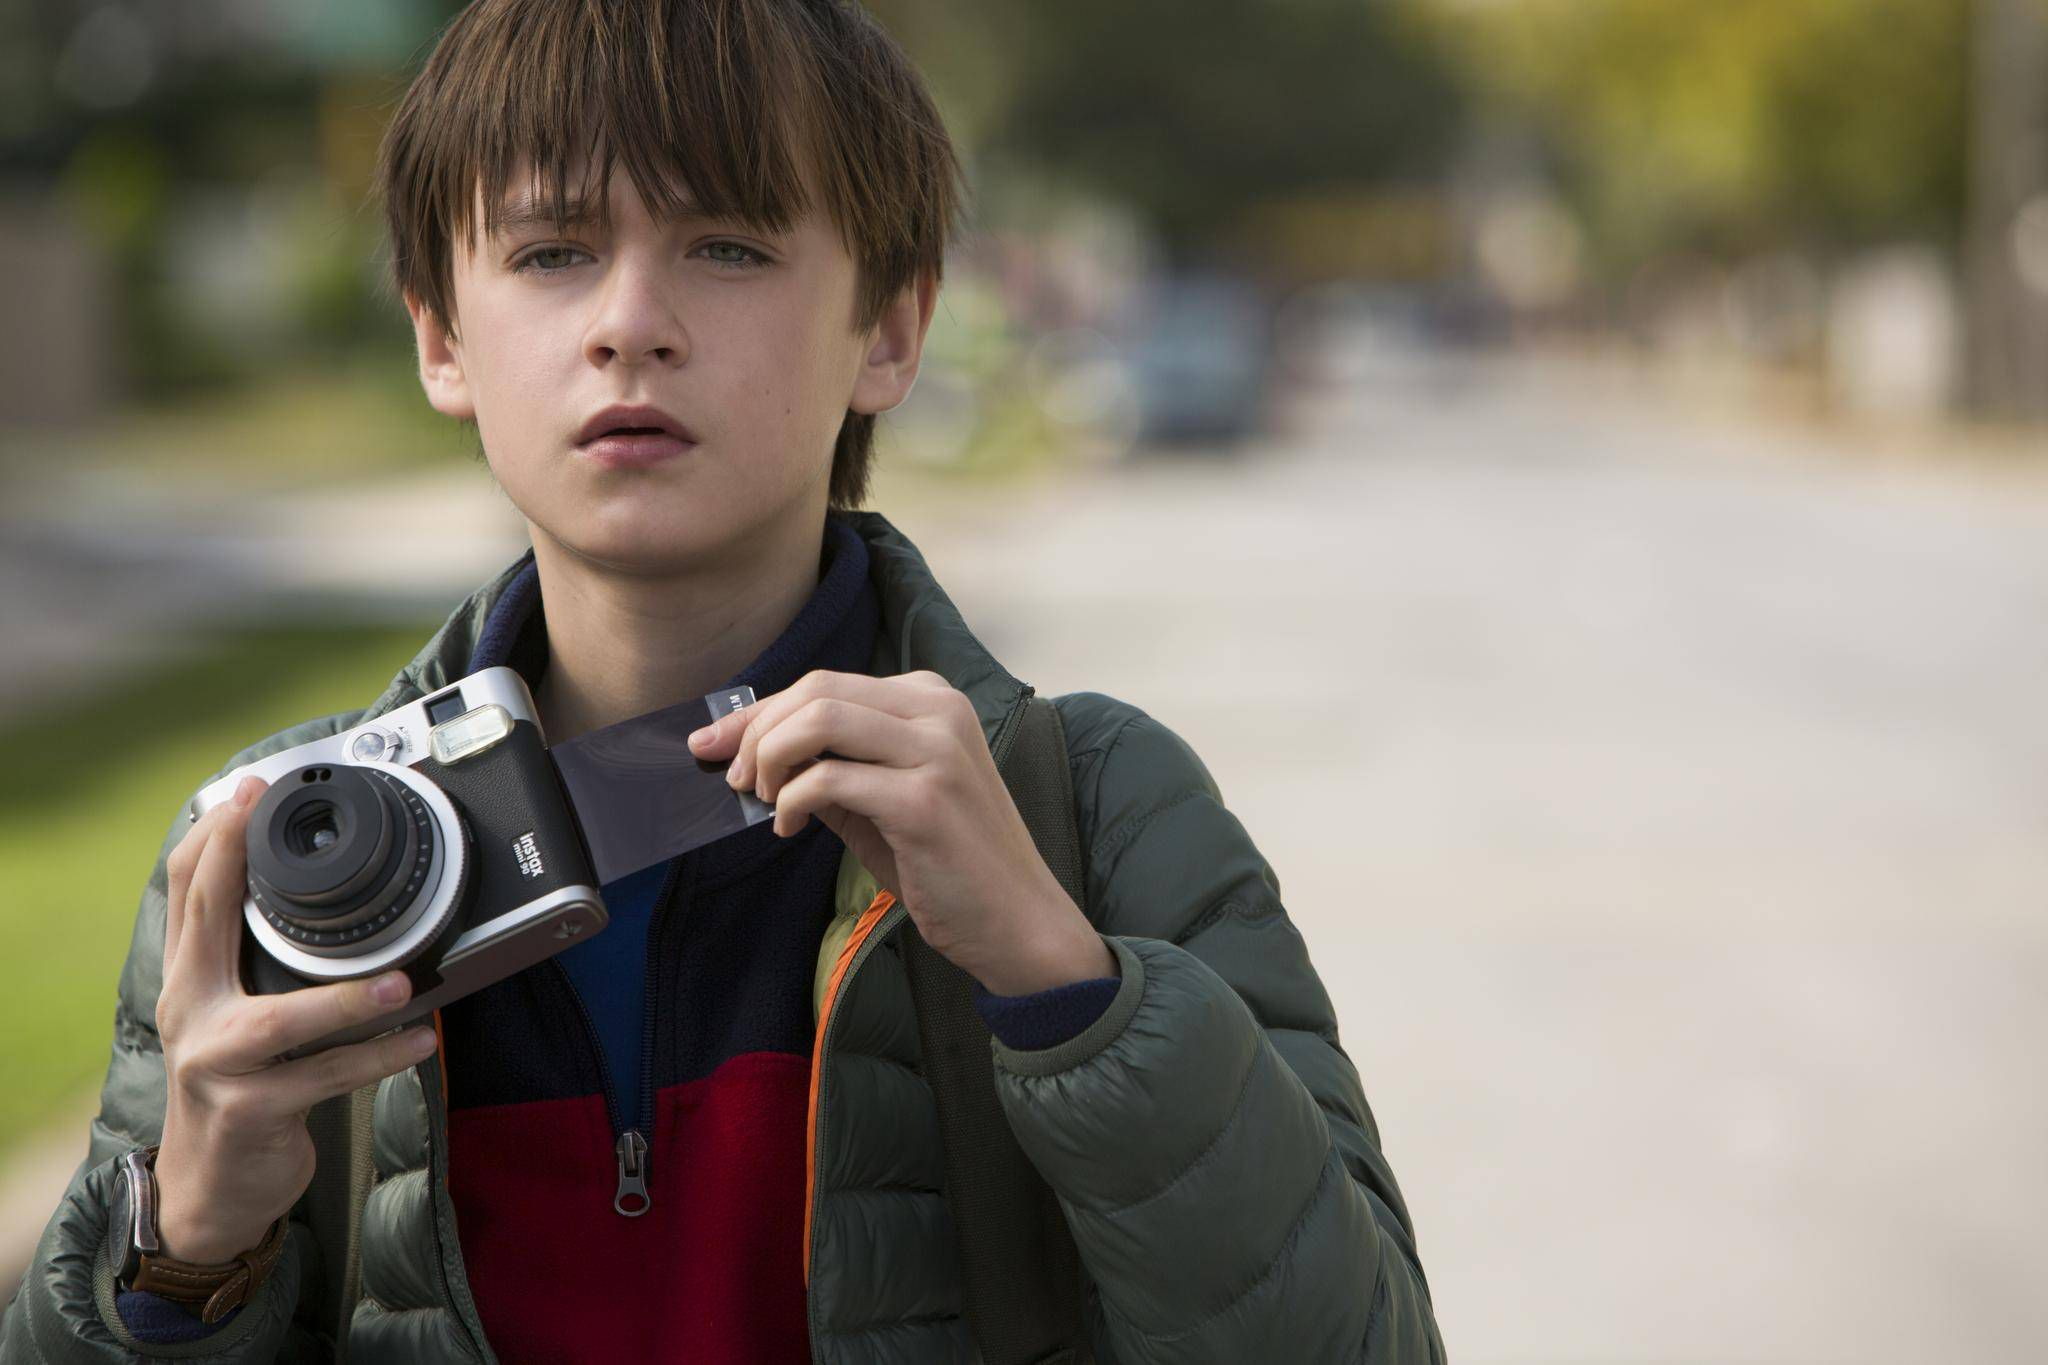 Review: The Book of Henry misses the mark with unsettling